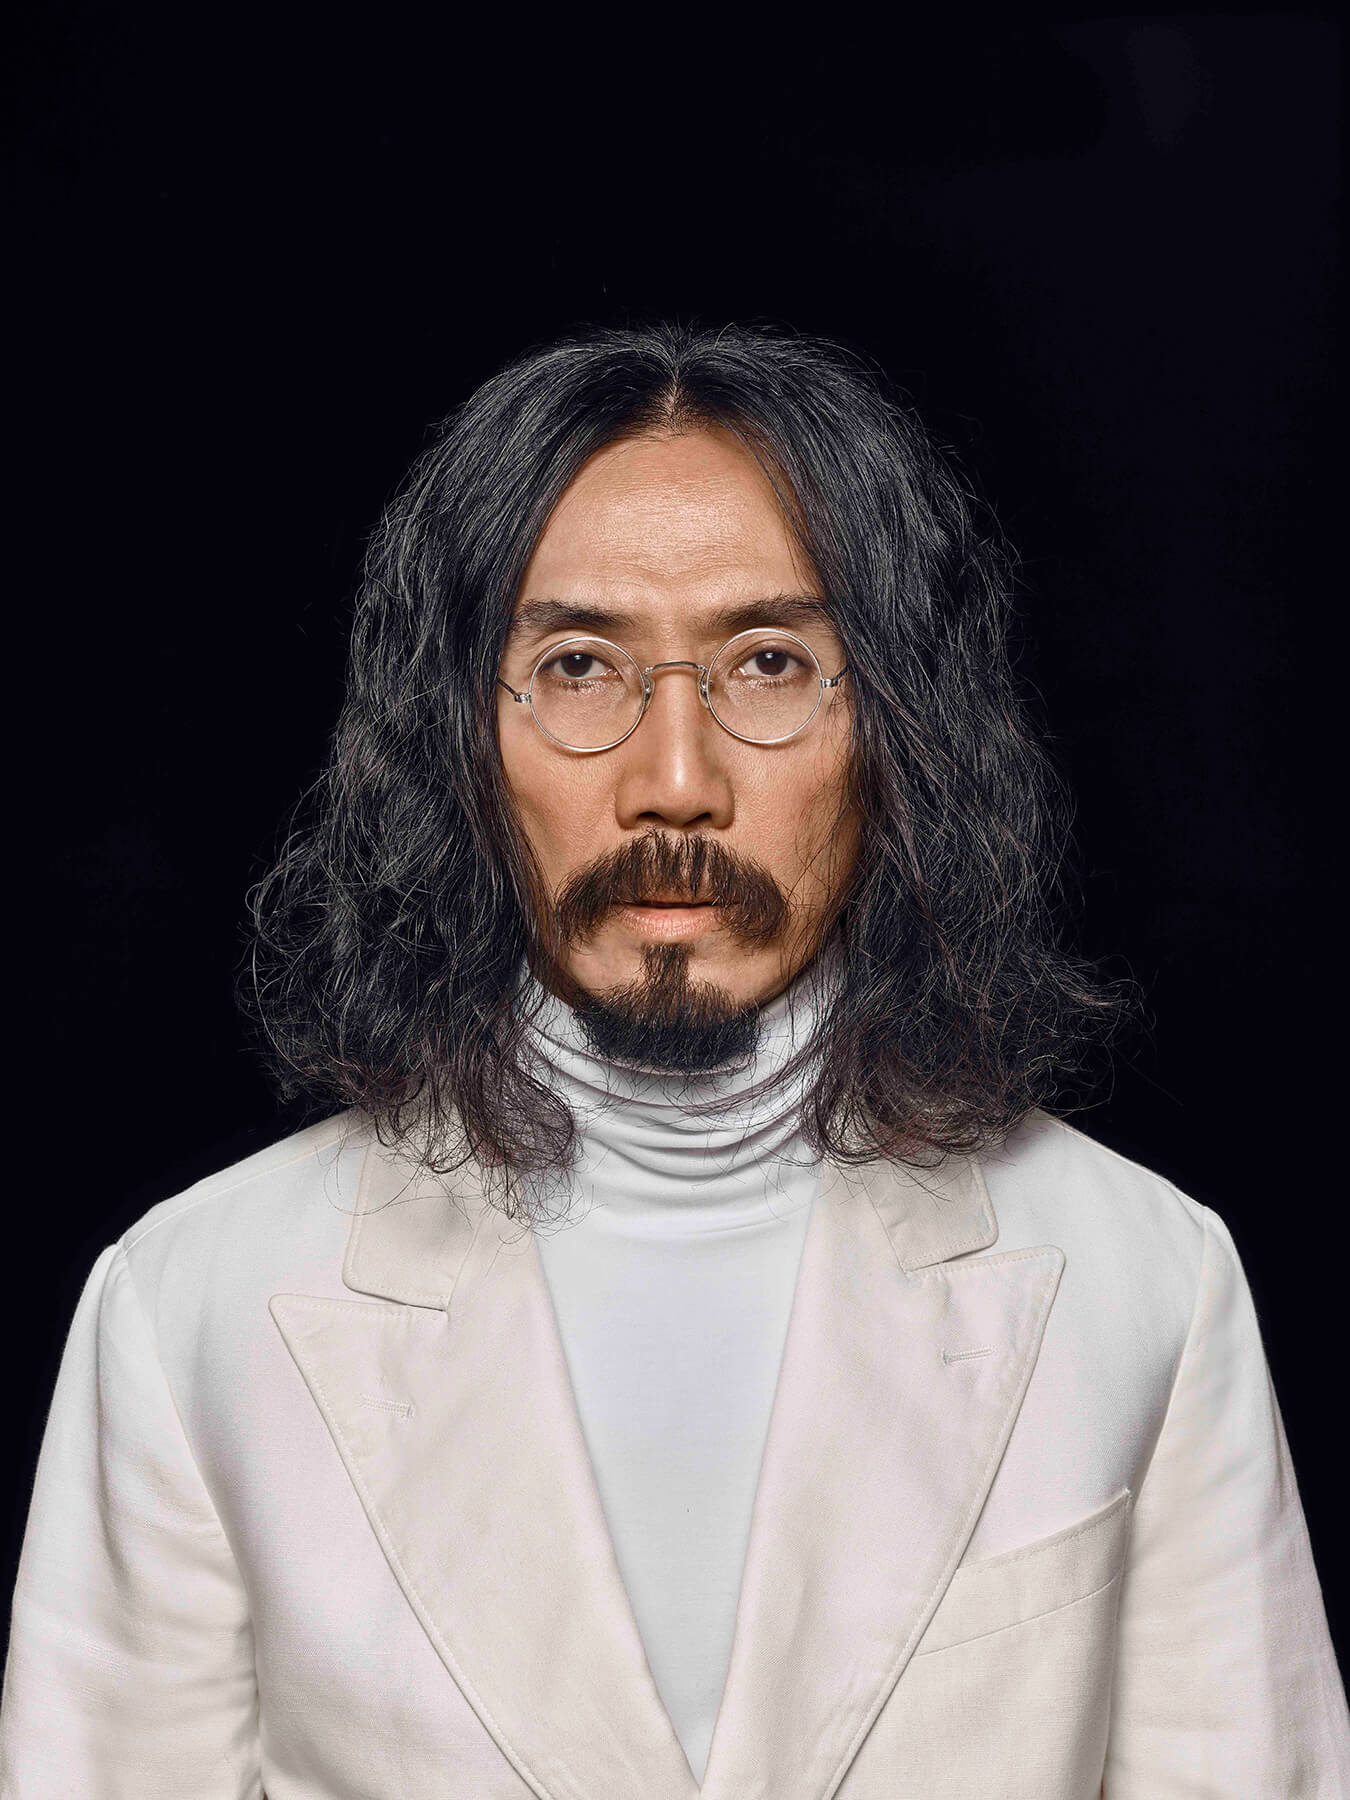 13 Nov 2017 Derong is styled as John Lennon